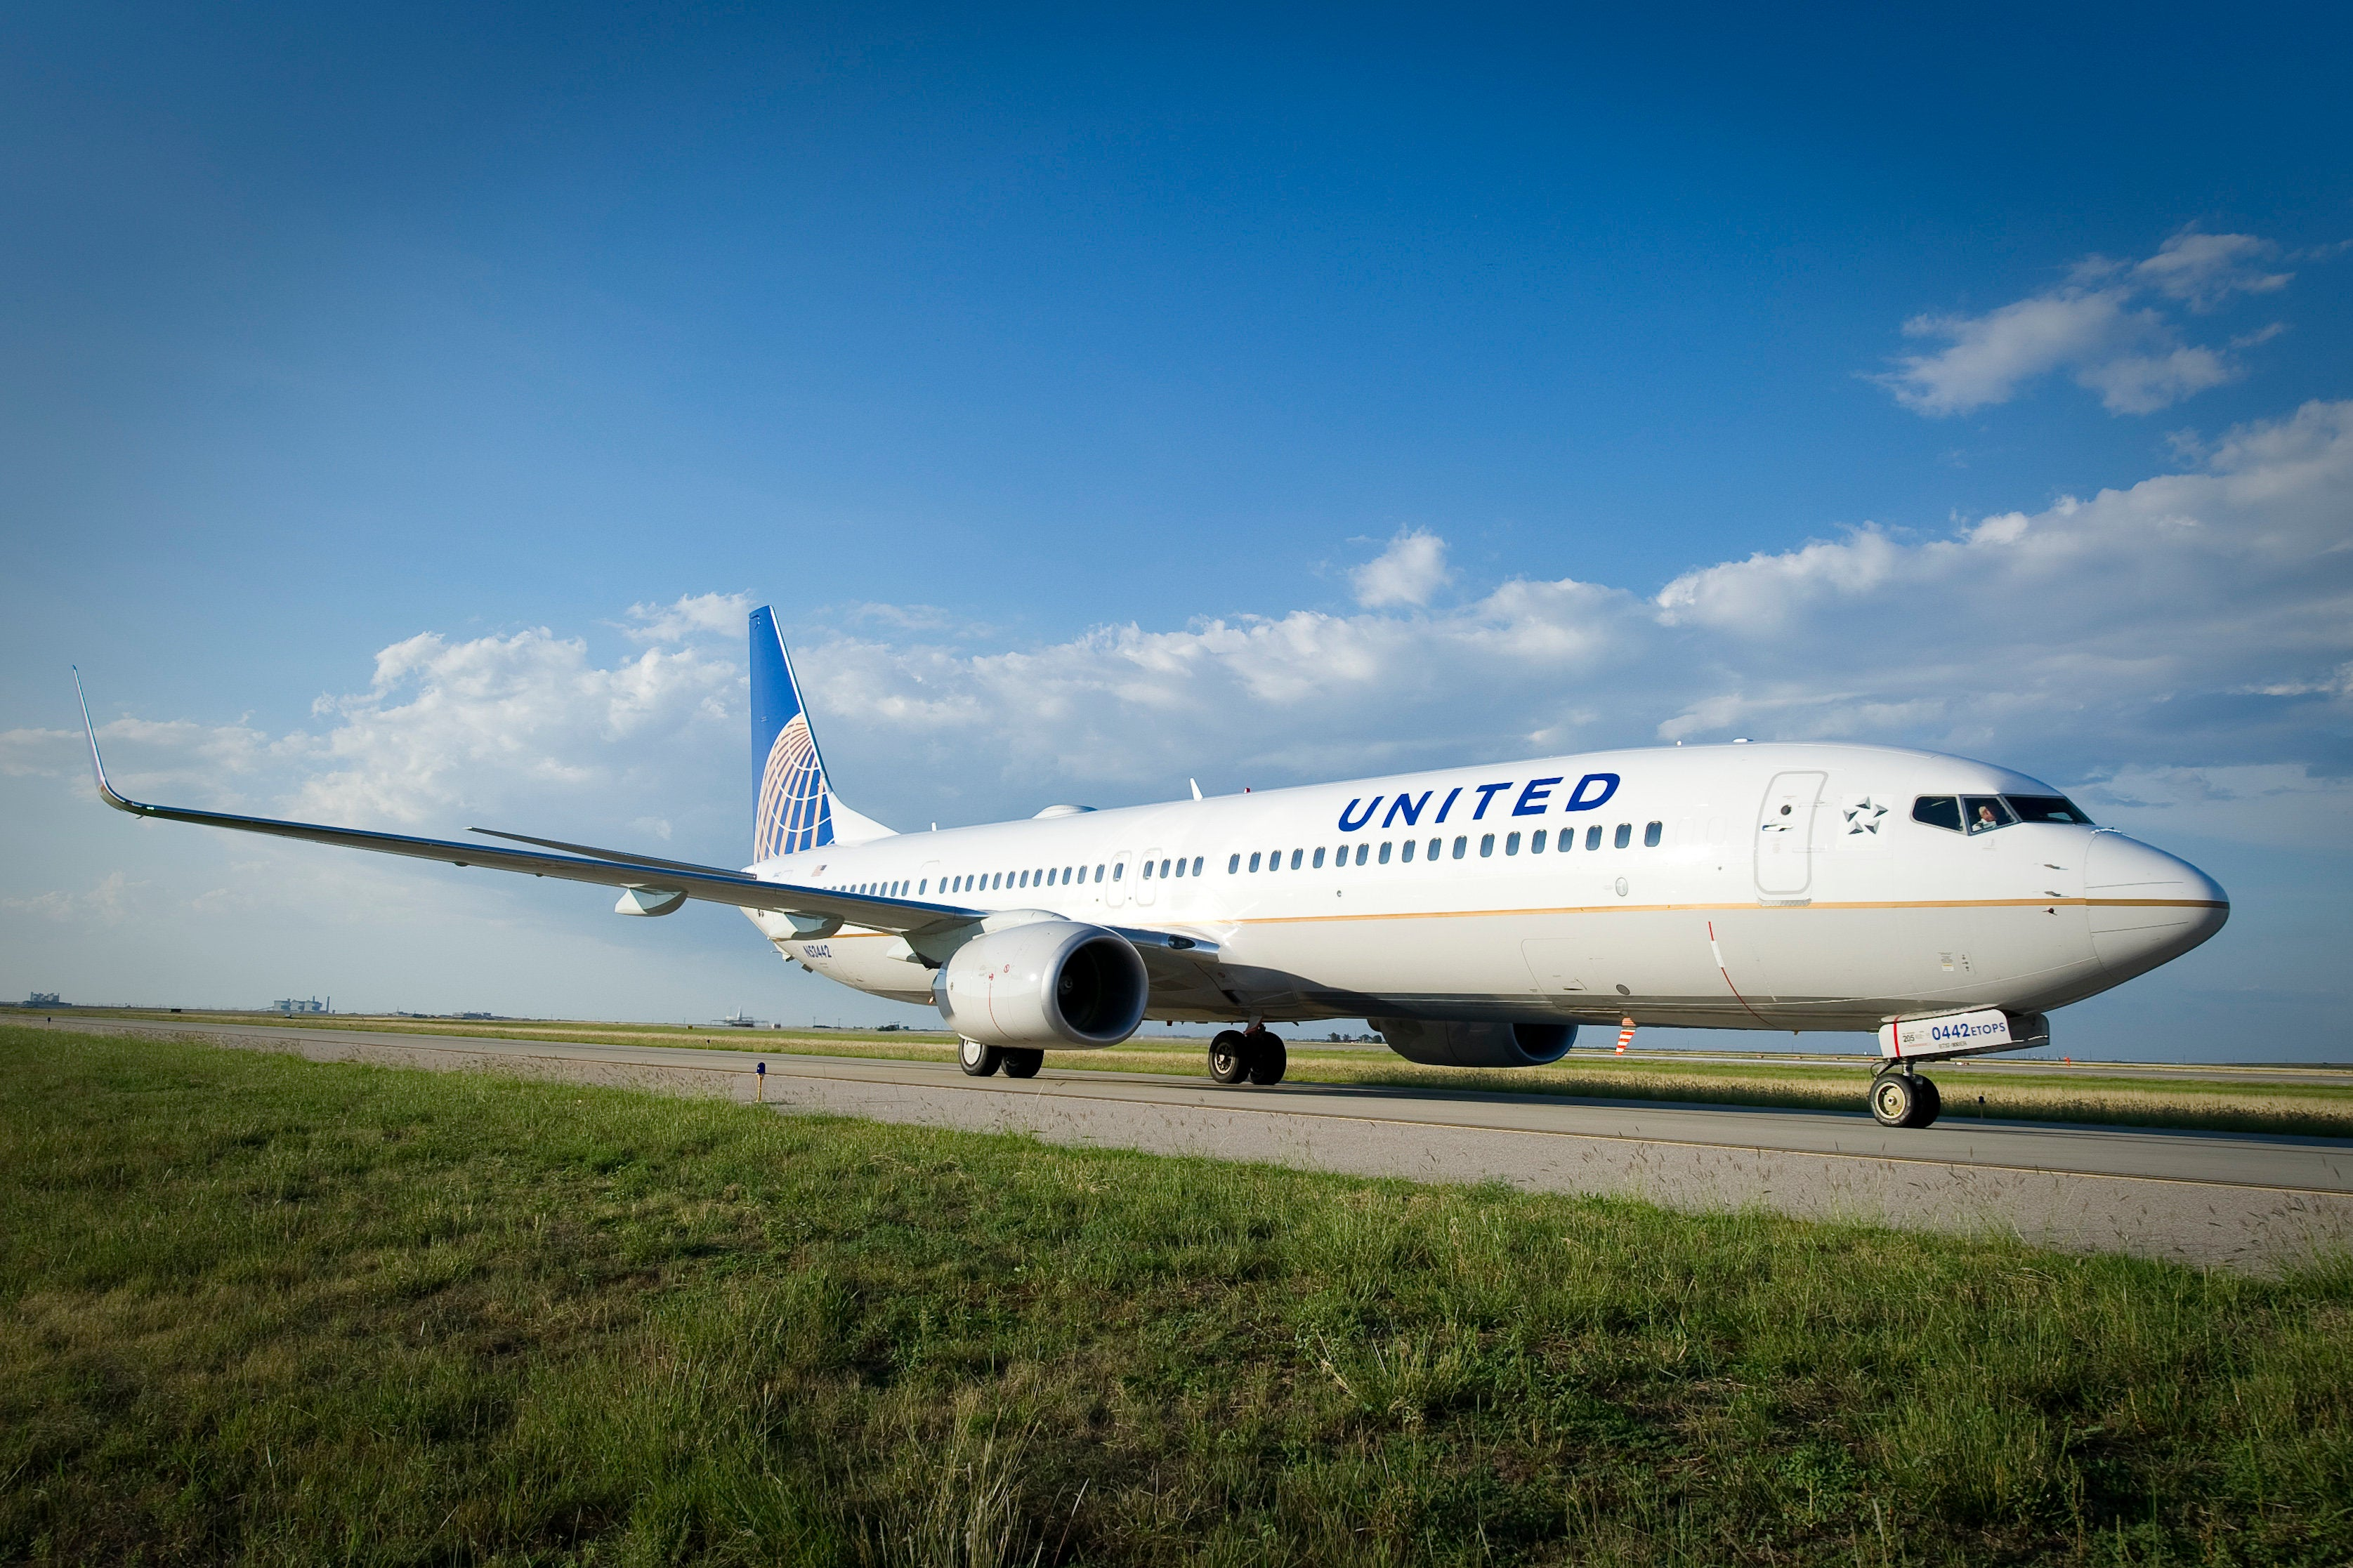 United Airlines Pulls Asia Service Because of Sparse Demand | The Motley Fool